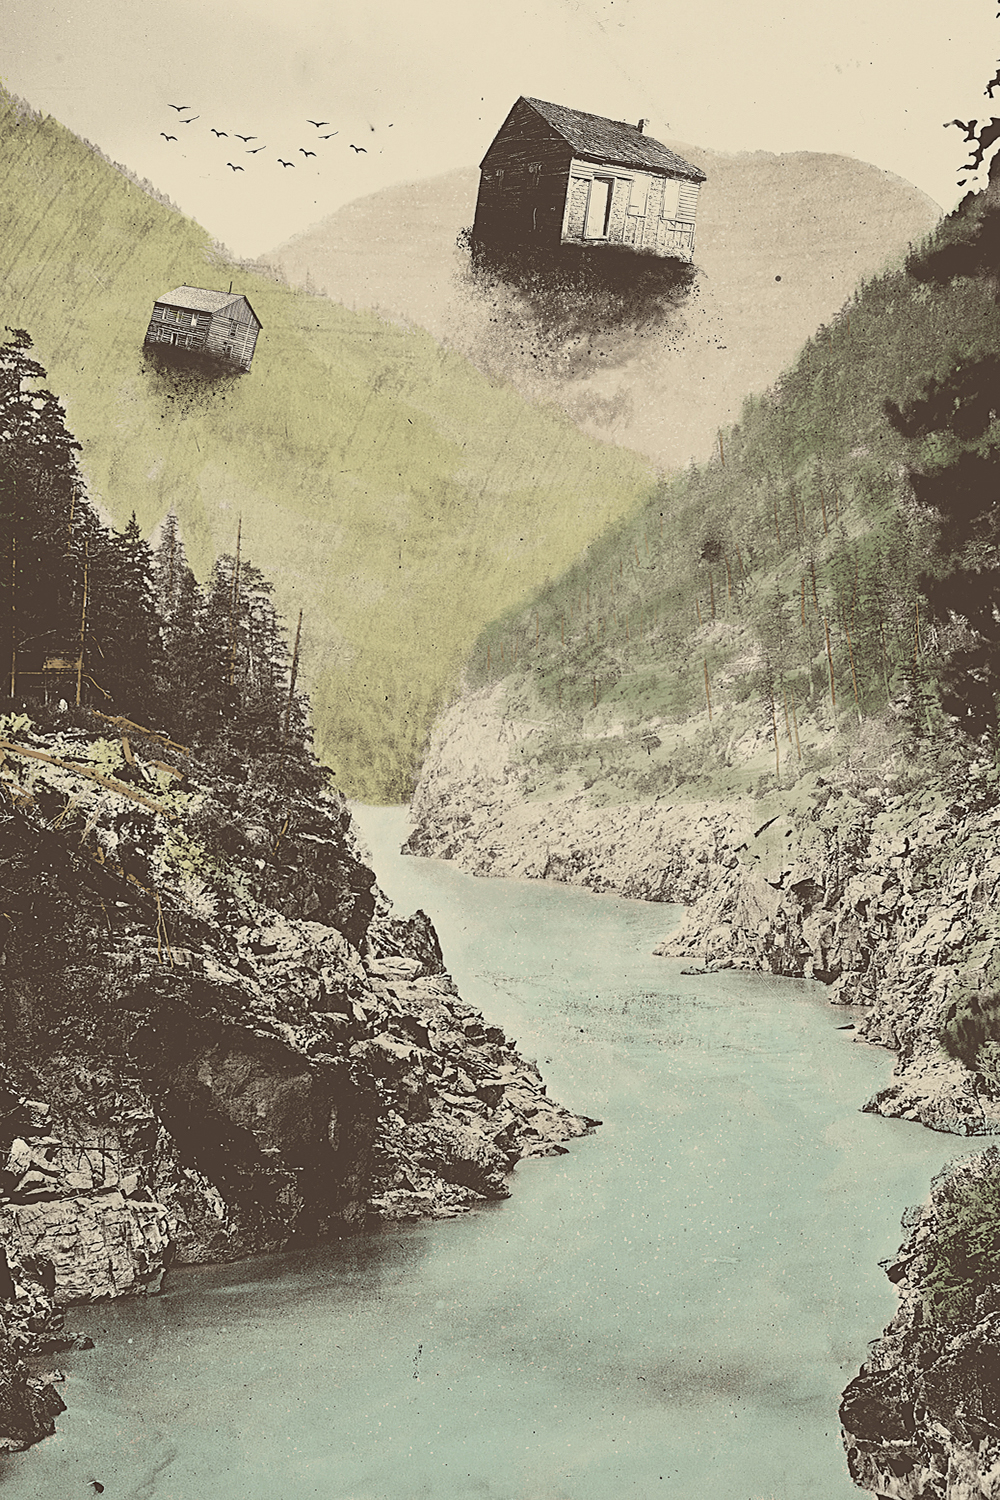 small cabins floating out of the woods over a river